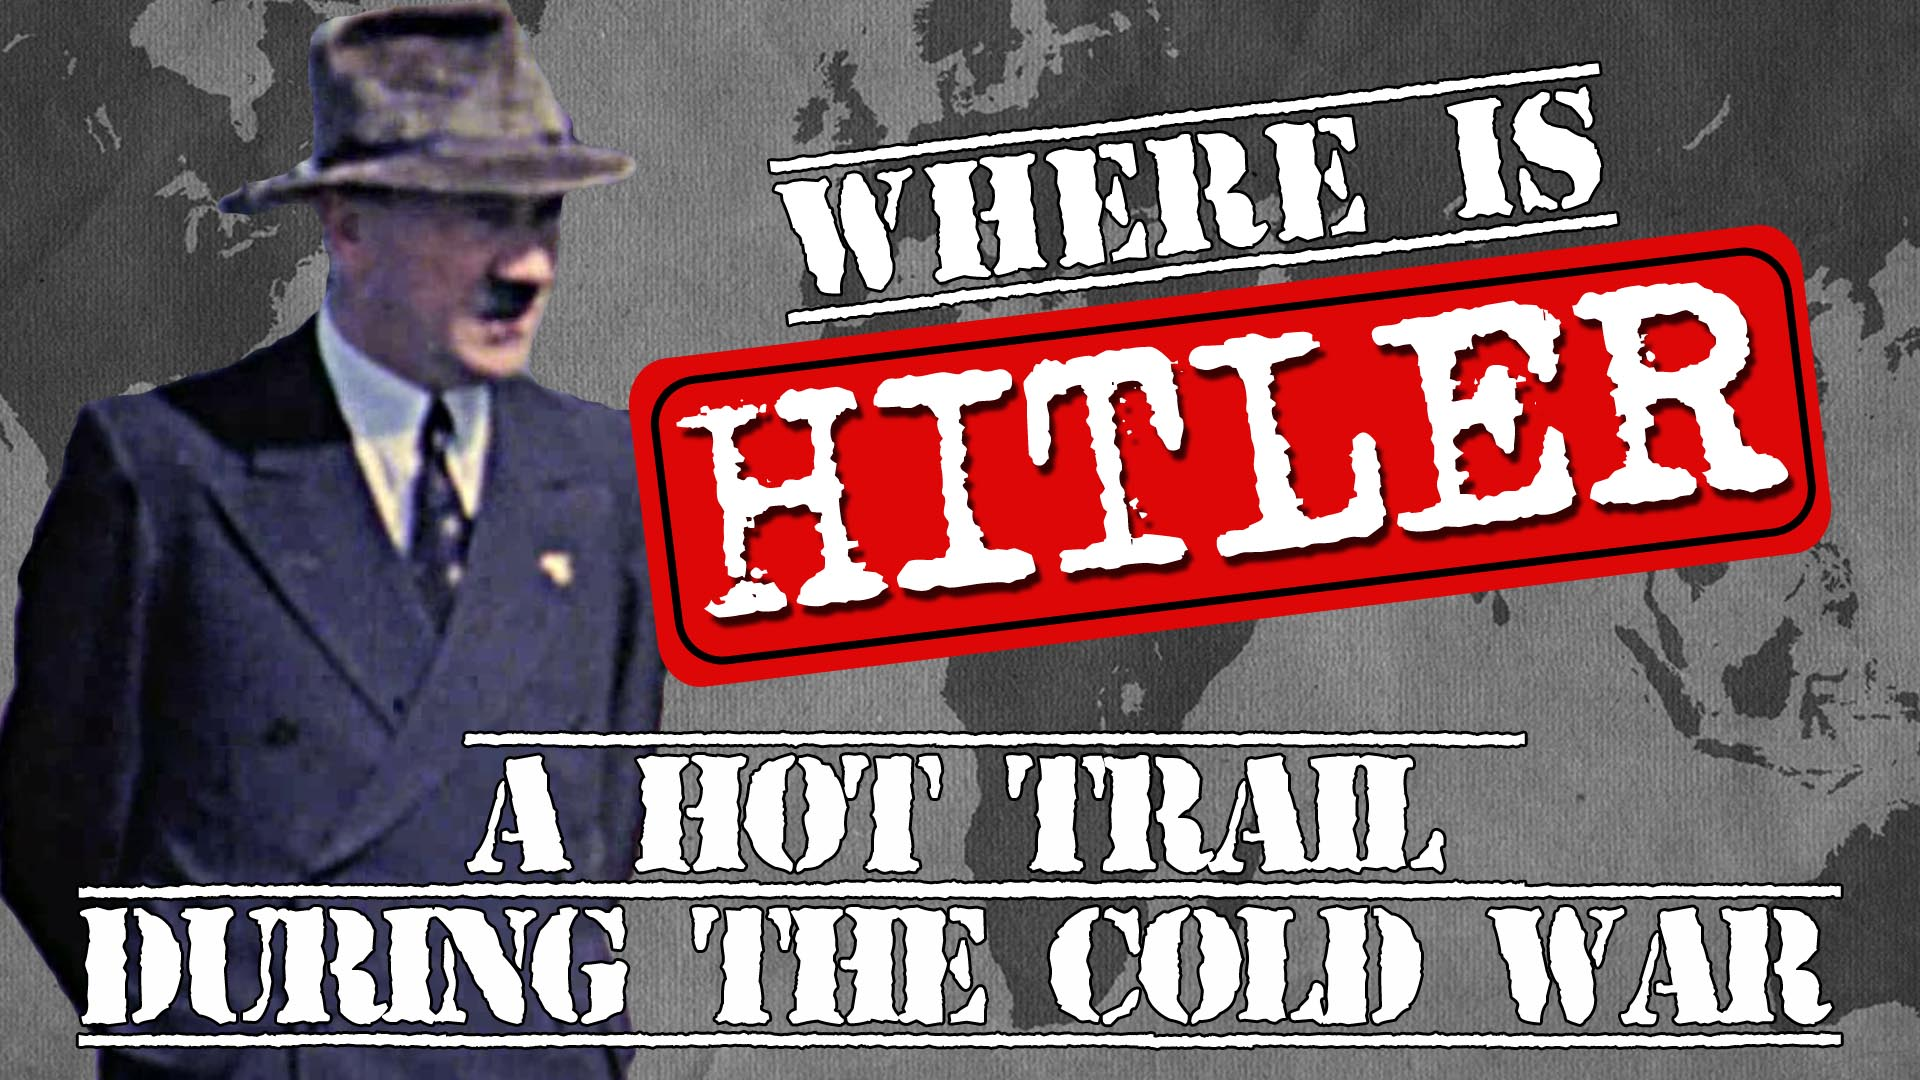 Where is Hitler? A Hot Trail During the Cold War